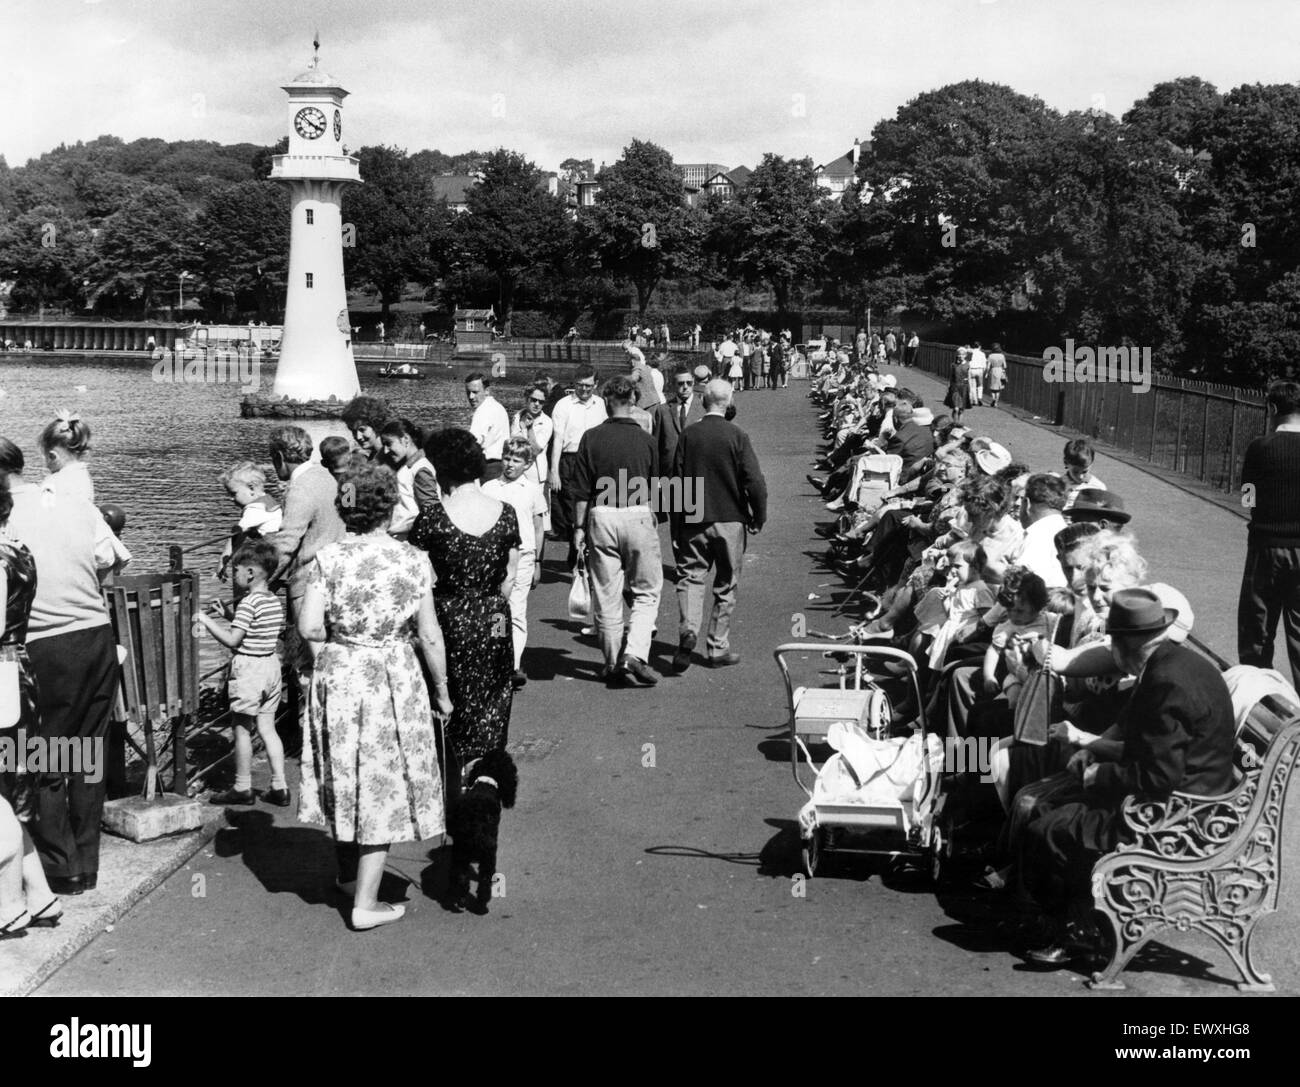 People enjoying an afternoon's sunshine on Roath Park Lake. Pictured in the background is the lighthouse memorial - Stock Image